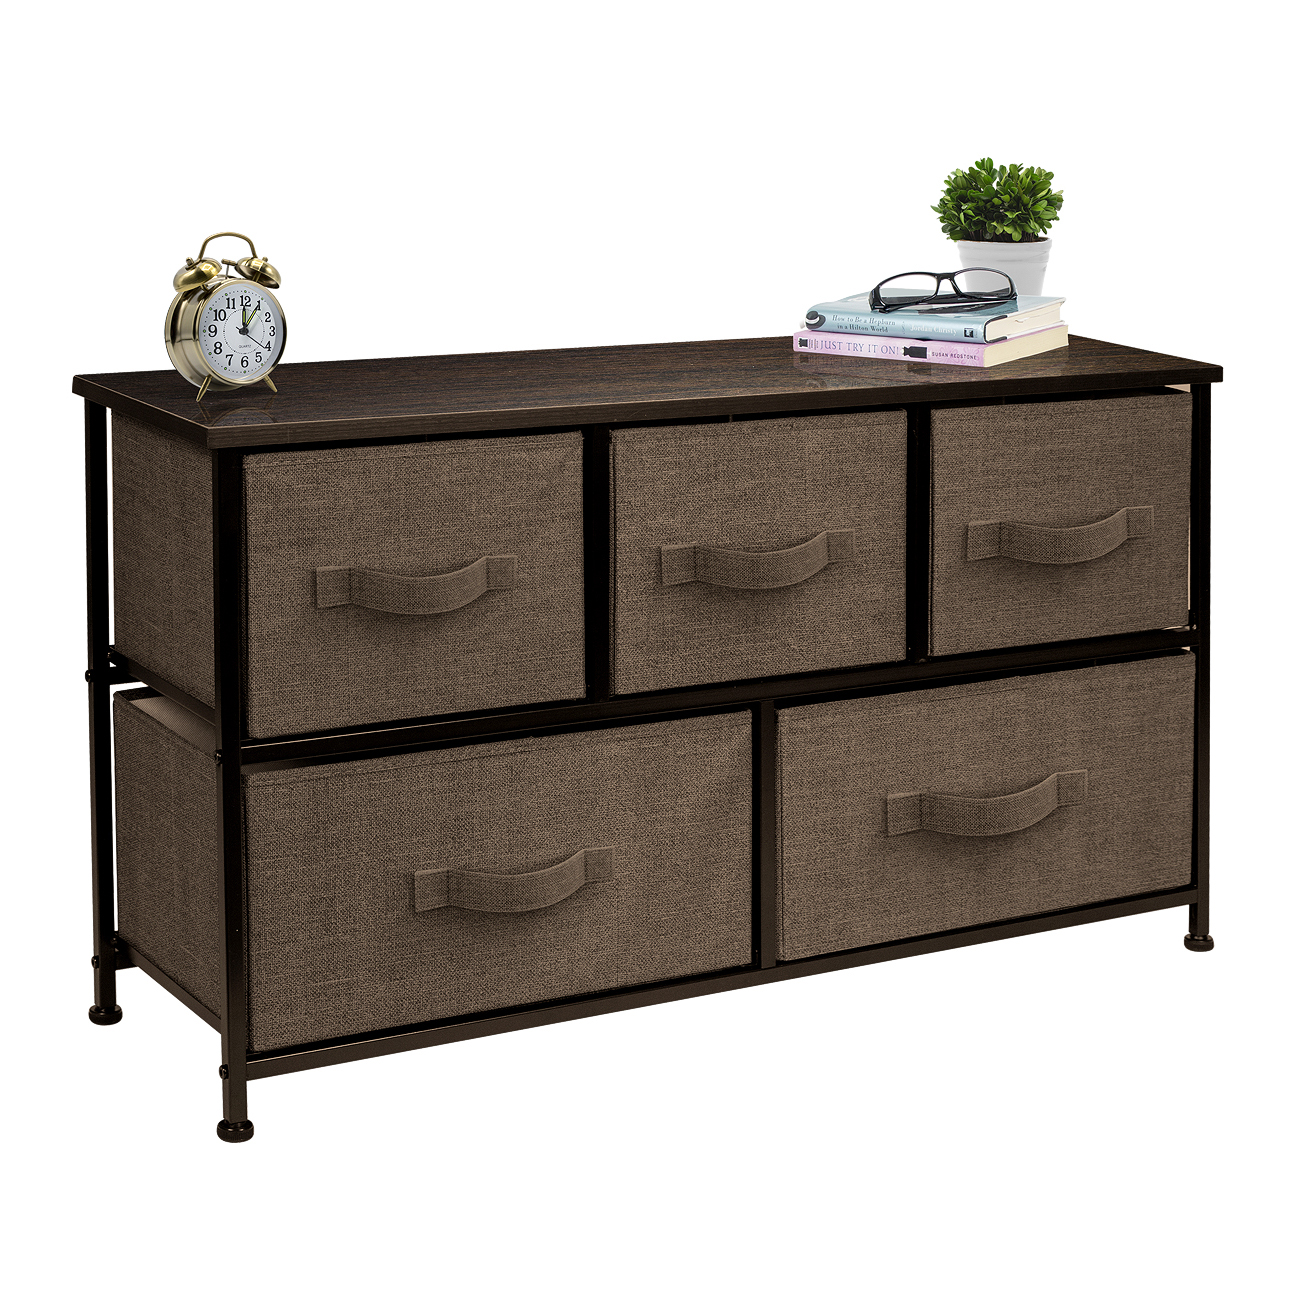 Closet Giantex 3 Drawers Dresser Wood Dresser Chest W//Large Storage Space Accent Furniture for Bedroom Entryway Living Room Hallway Dresser Black Solid Wood Frame /& Premium Metal Handle